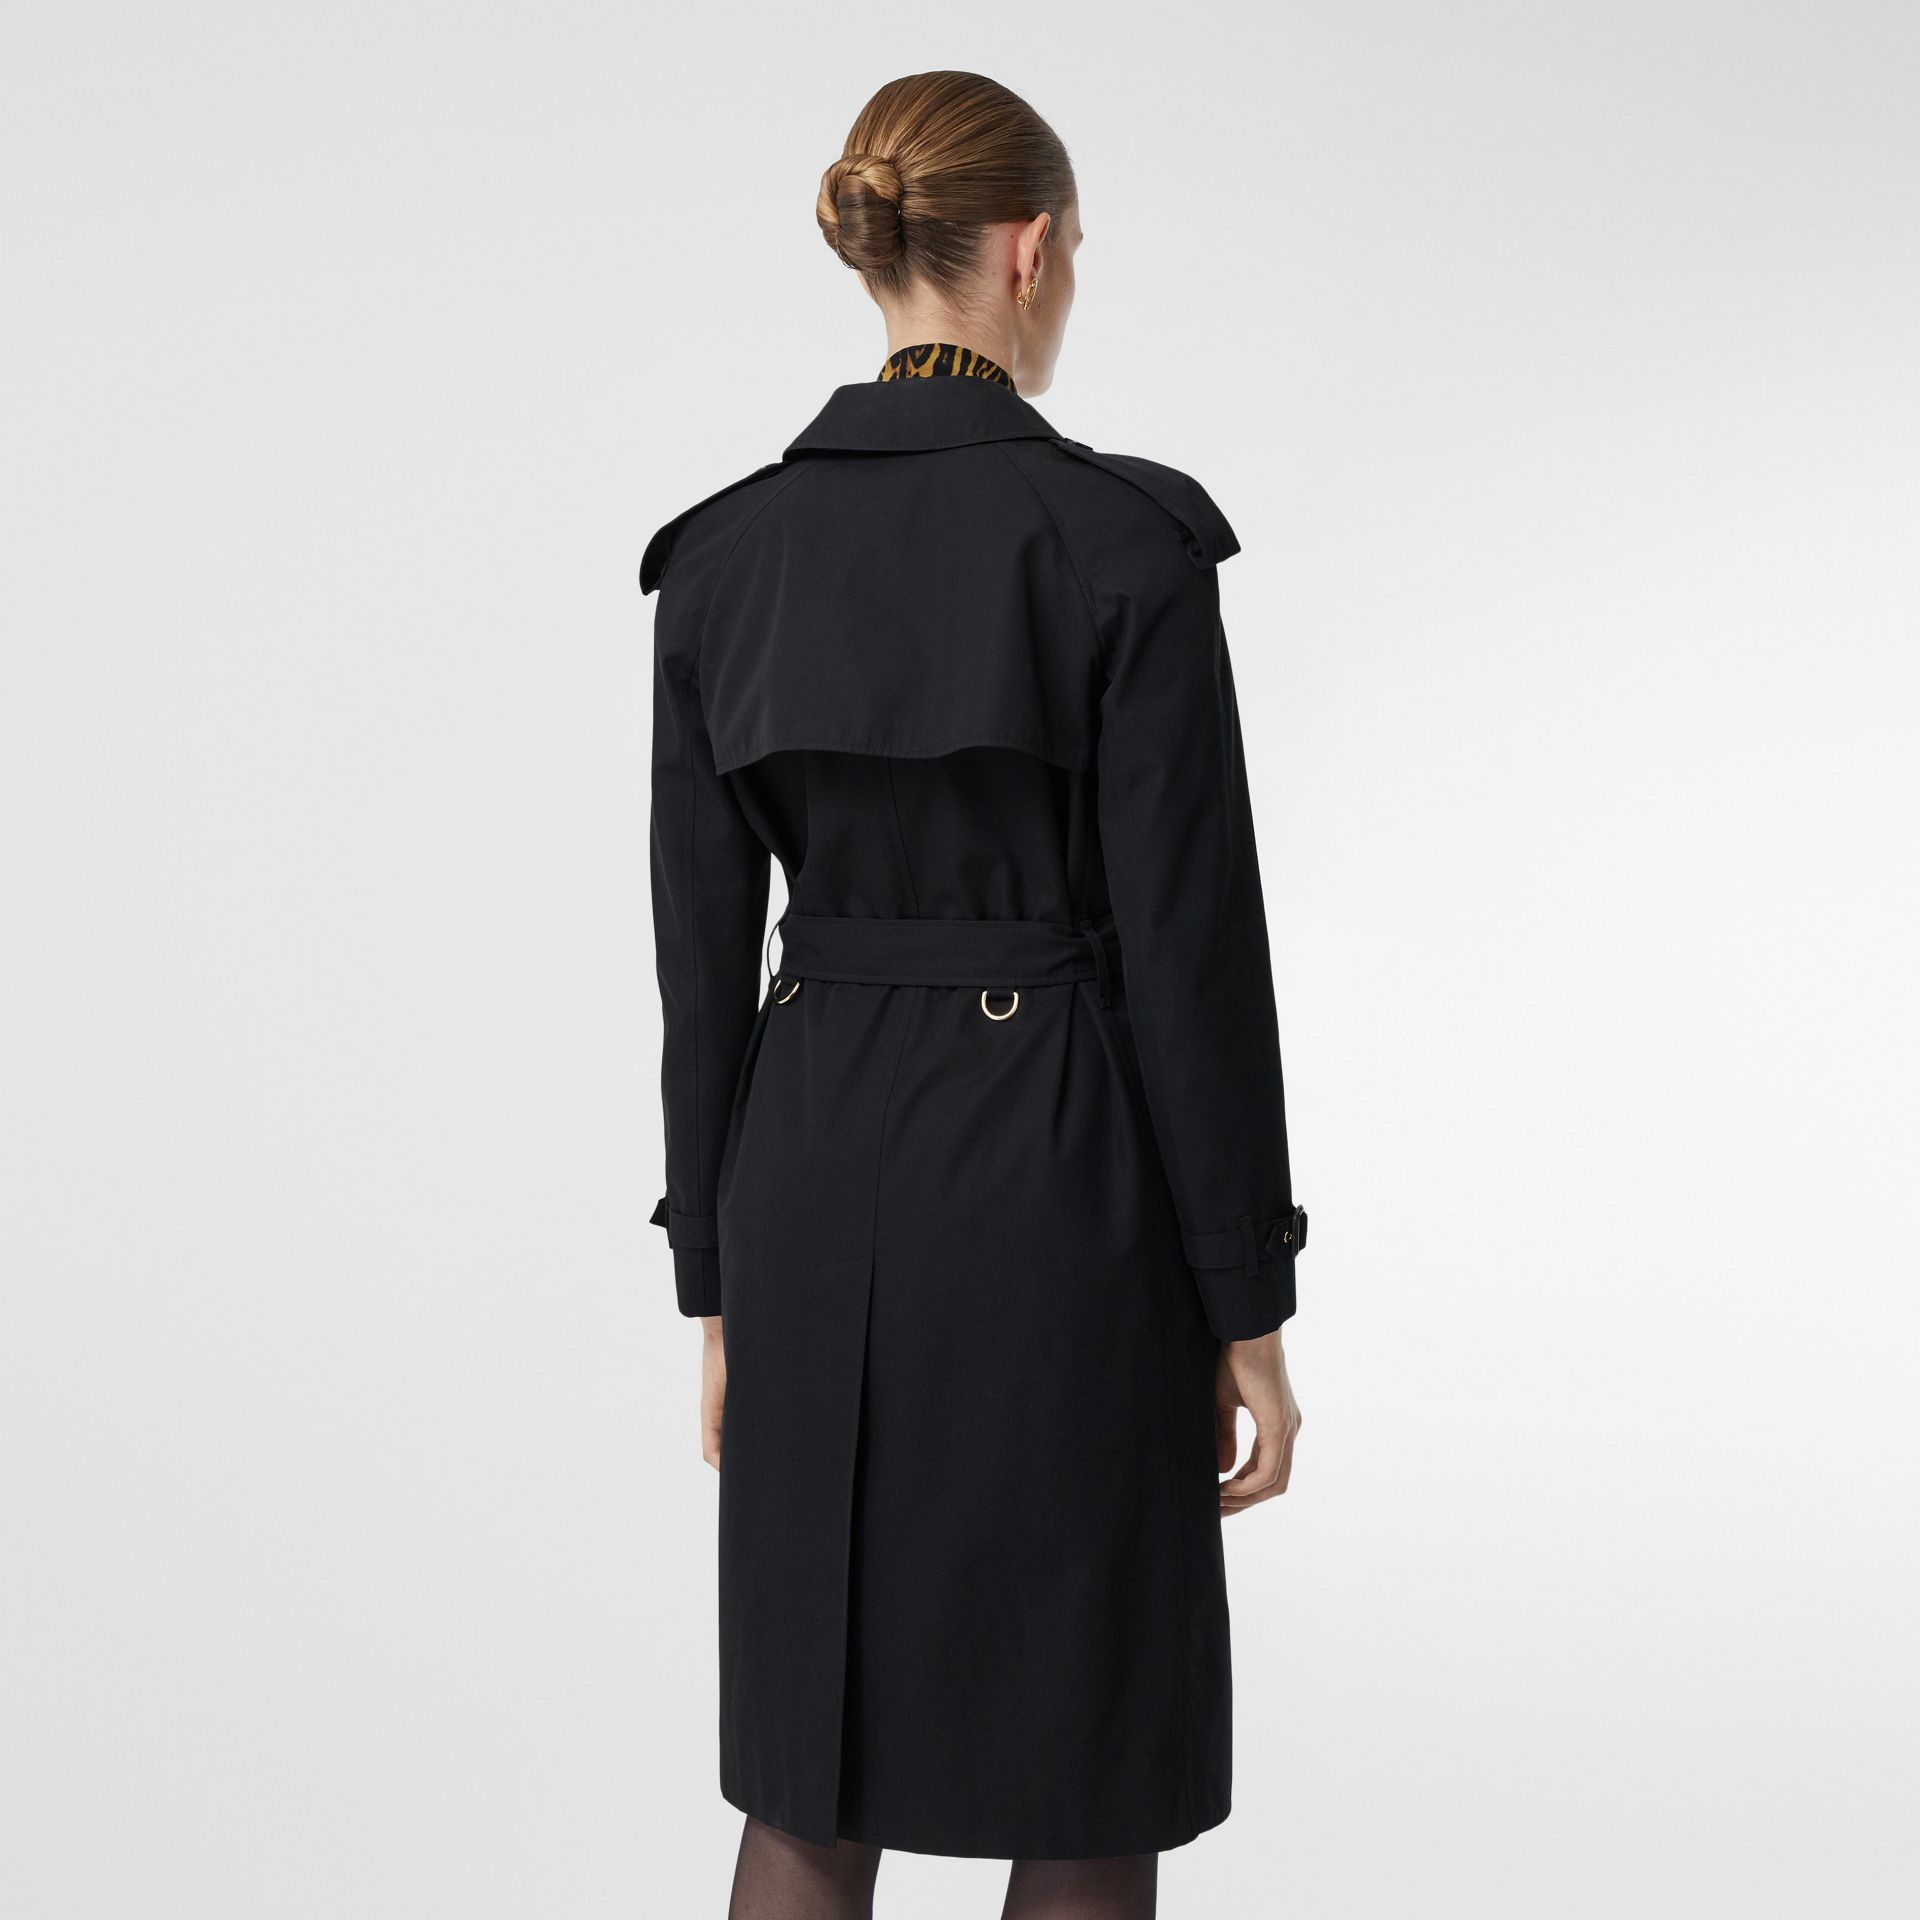 Leopard Print-lined Cotton Gabardine Trench Coat in Black - Women | Burberry Singapore - gallery image 2